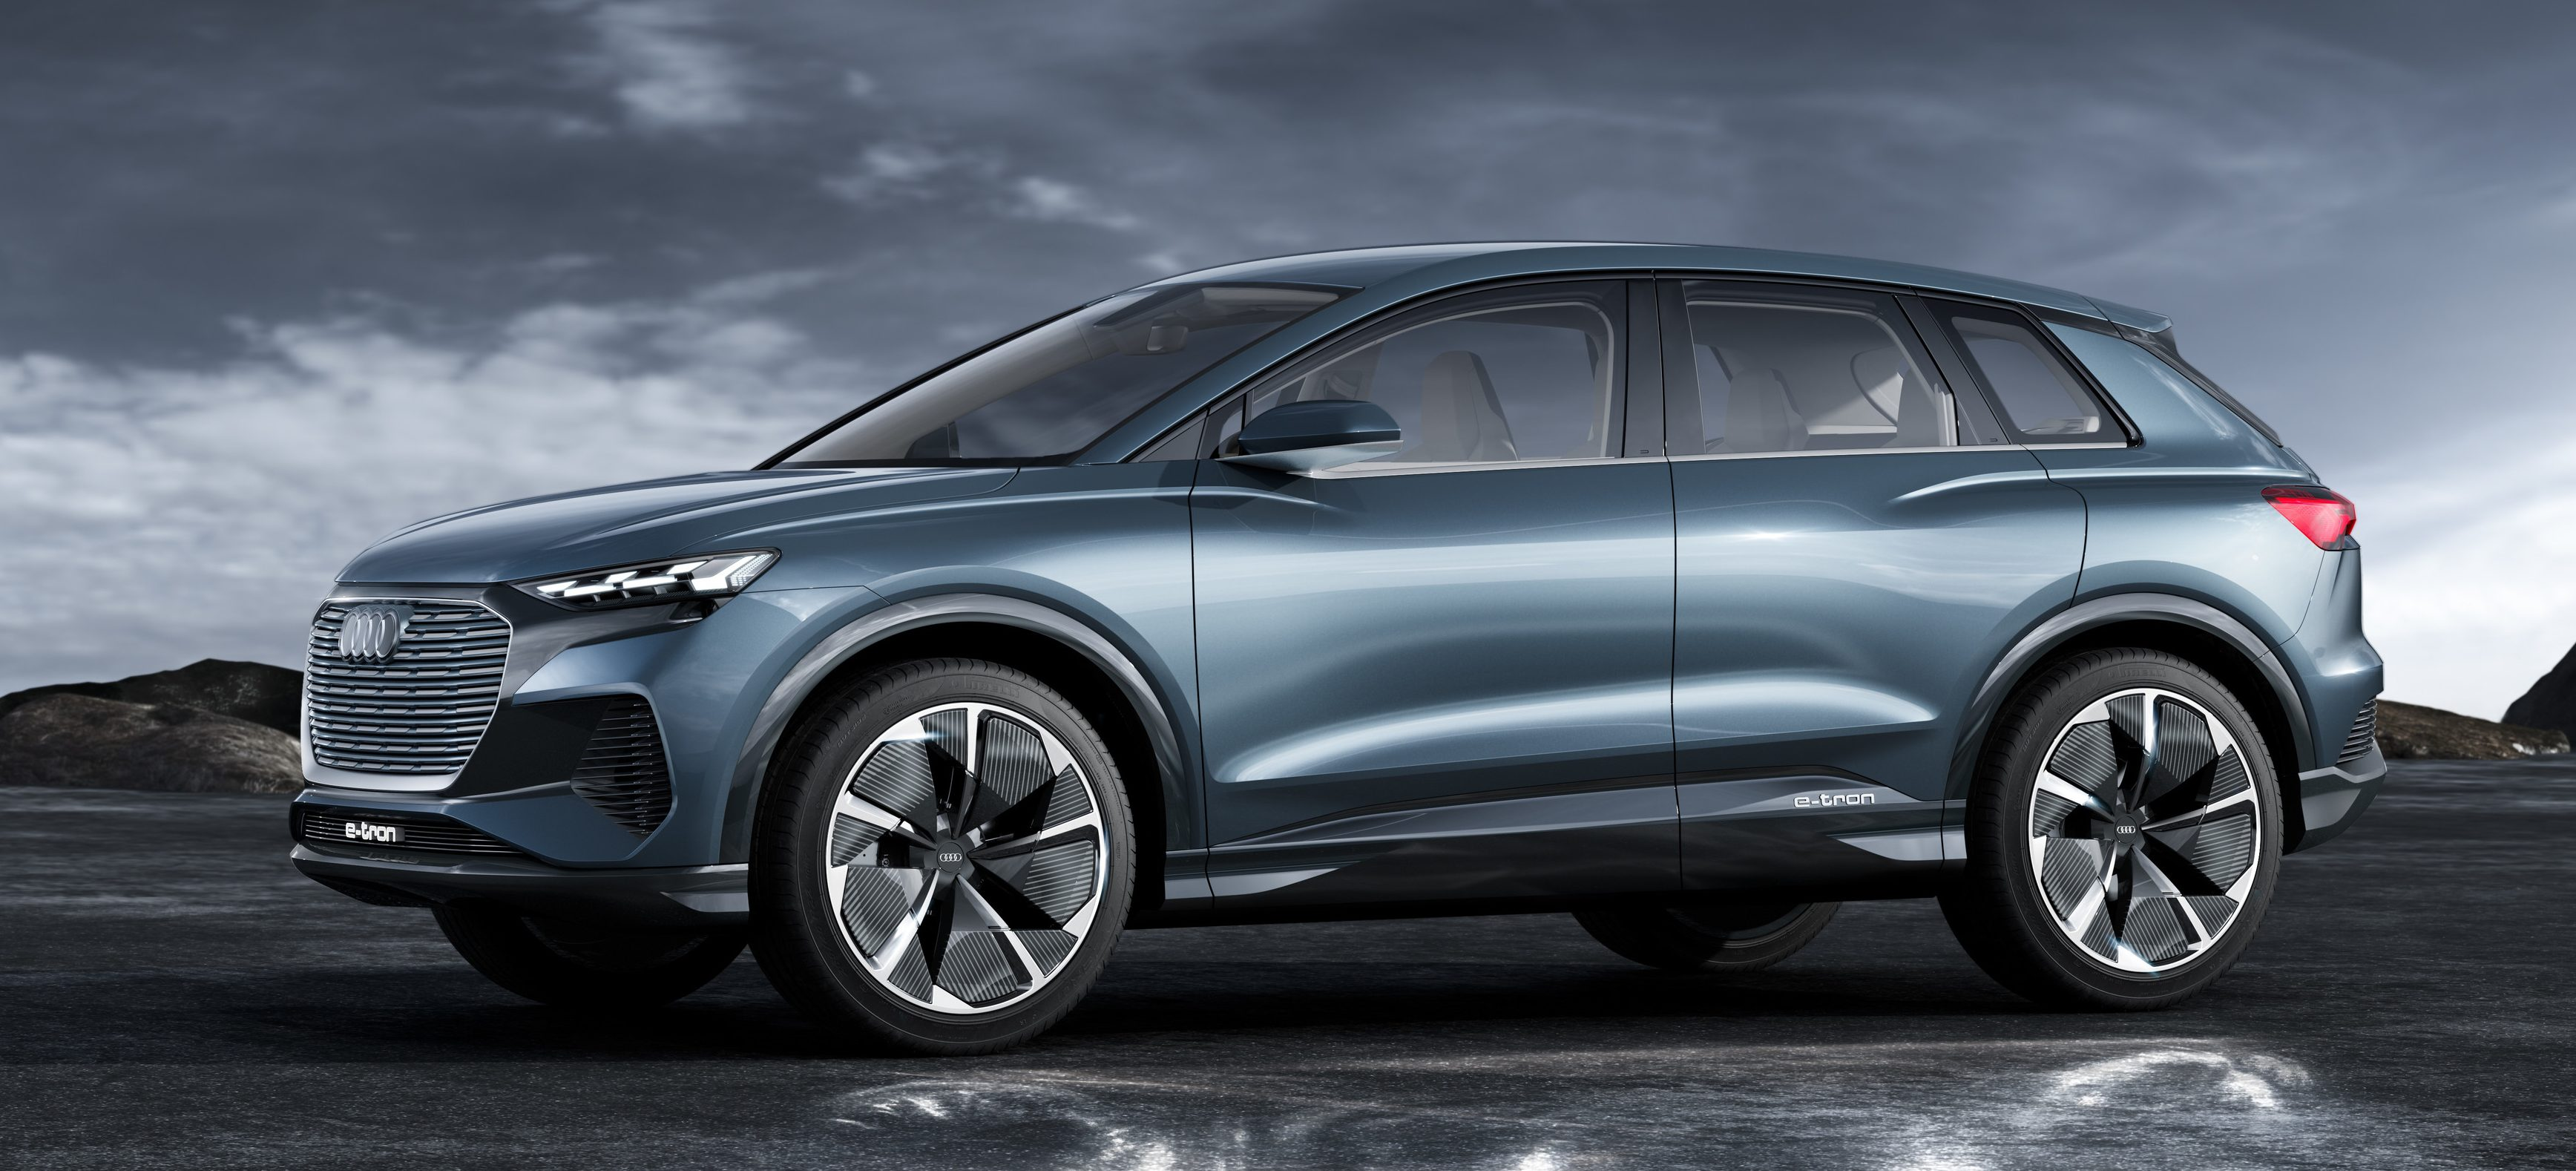 Audi unveils small electric Q4 e-tron SUV with 280 miles of range